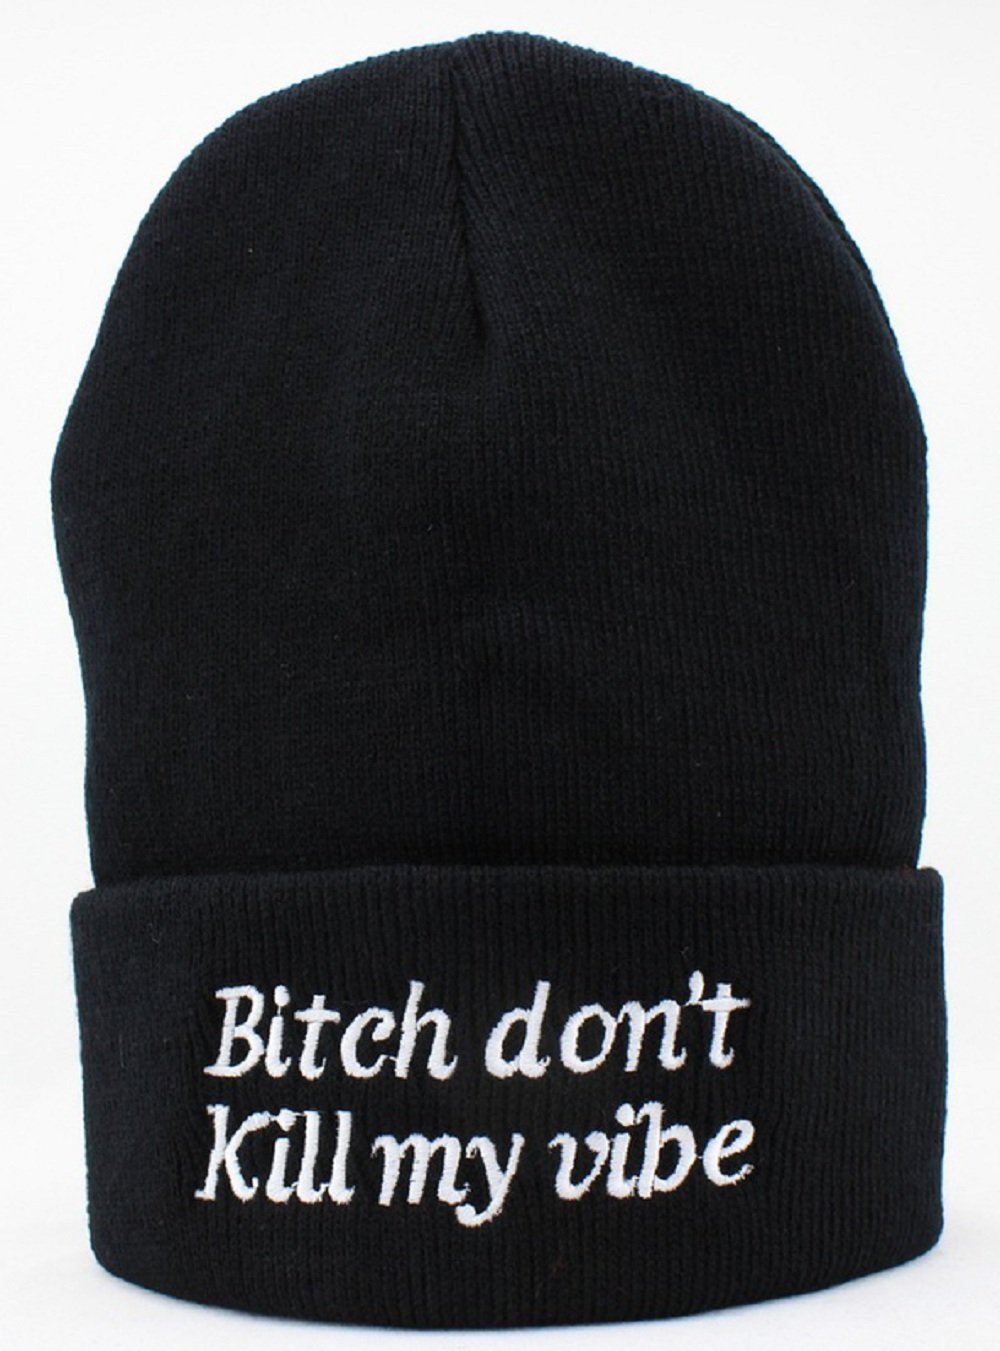 17c82dbdabc Amazon.com   Hot Funny Winter Warm Bitch Don t Kill My Vibe Knit Beanie Hat  for ...